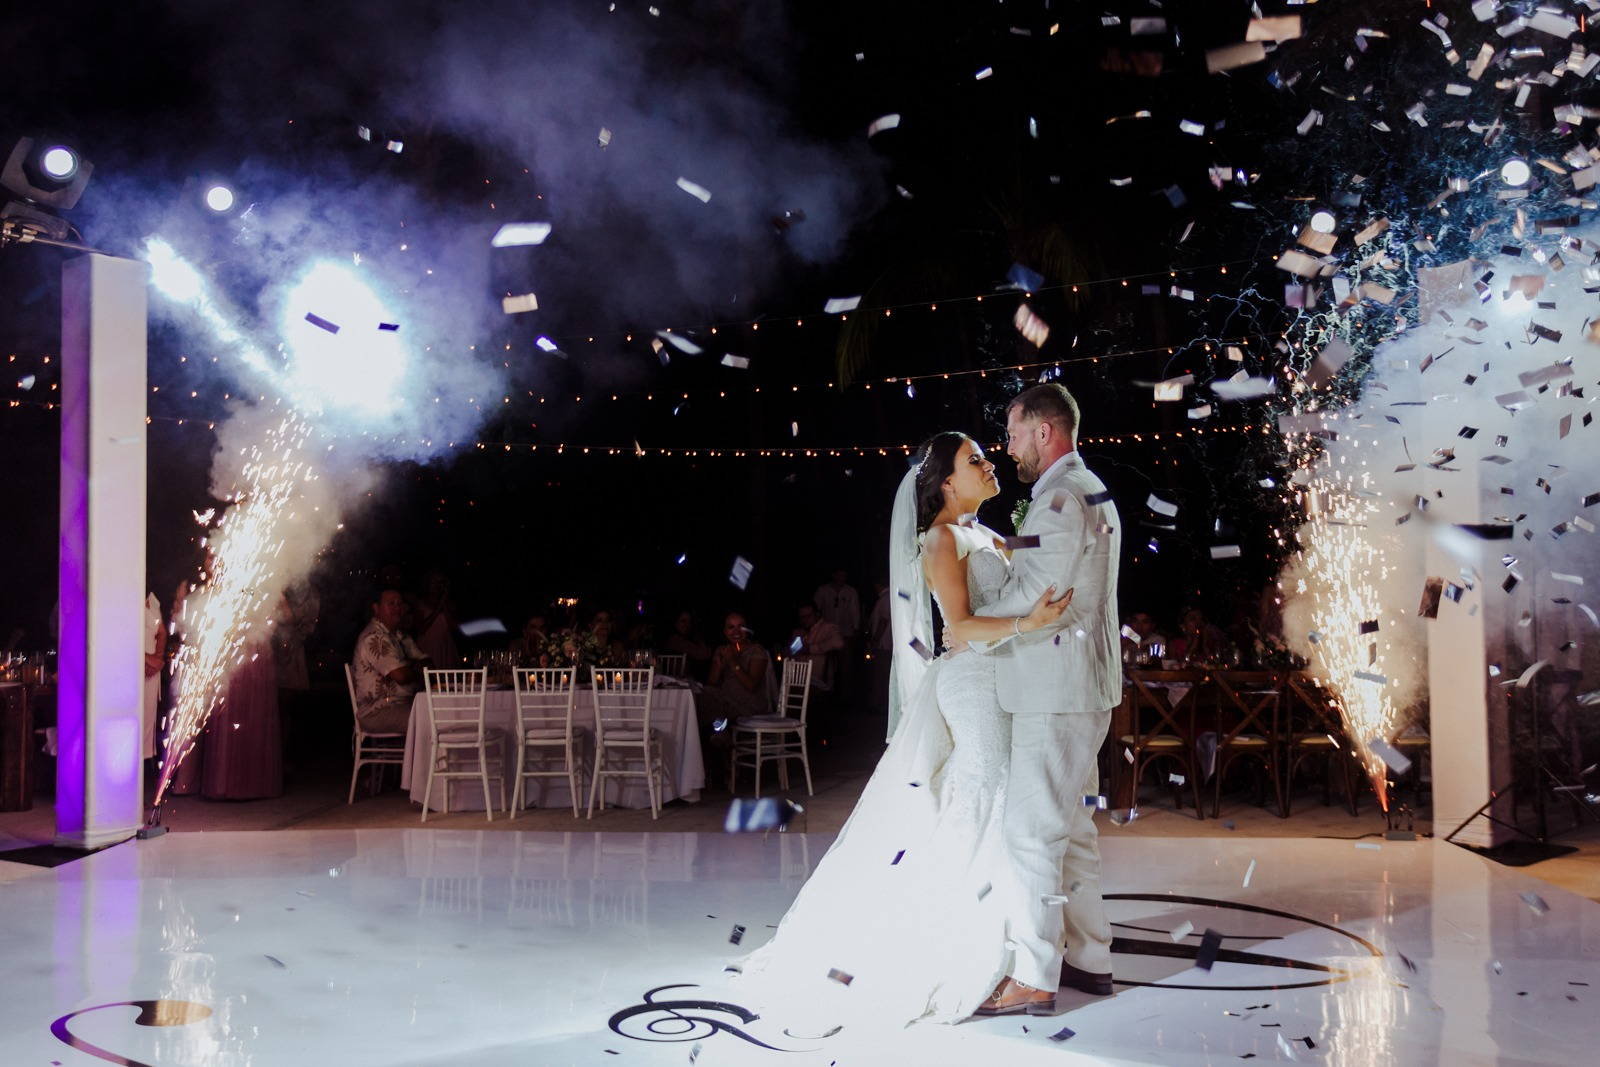 bride-groom-dance-first dance-wedding-look-fireworks-dancefloor